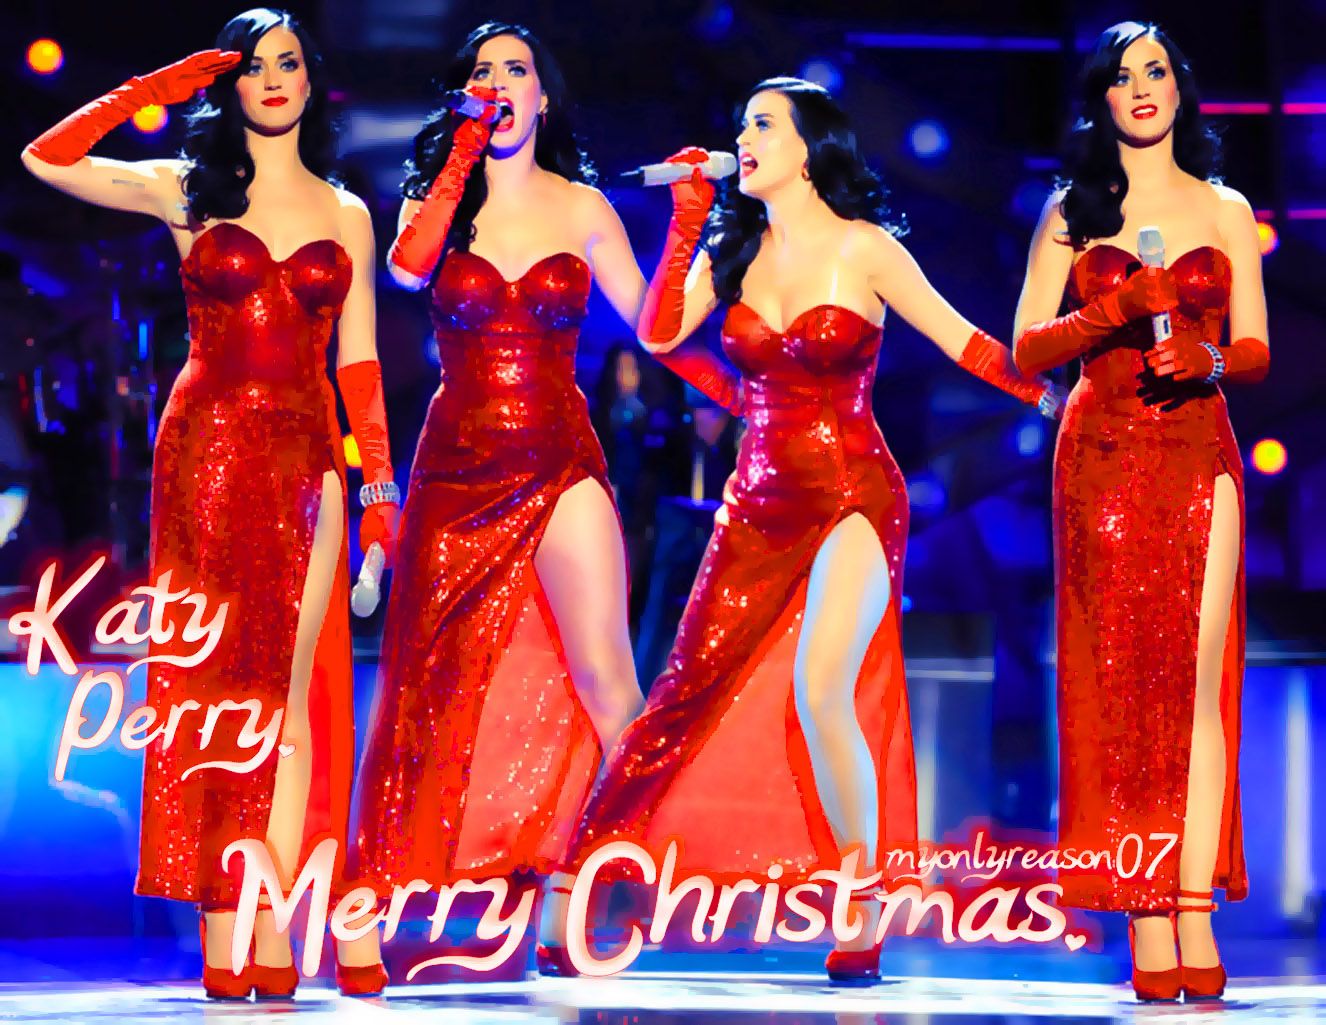 Katy-Perry-Christmas-Twitter